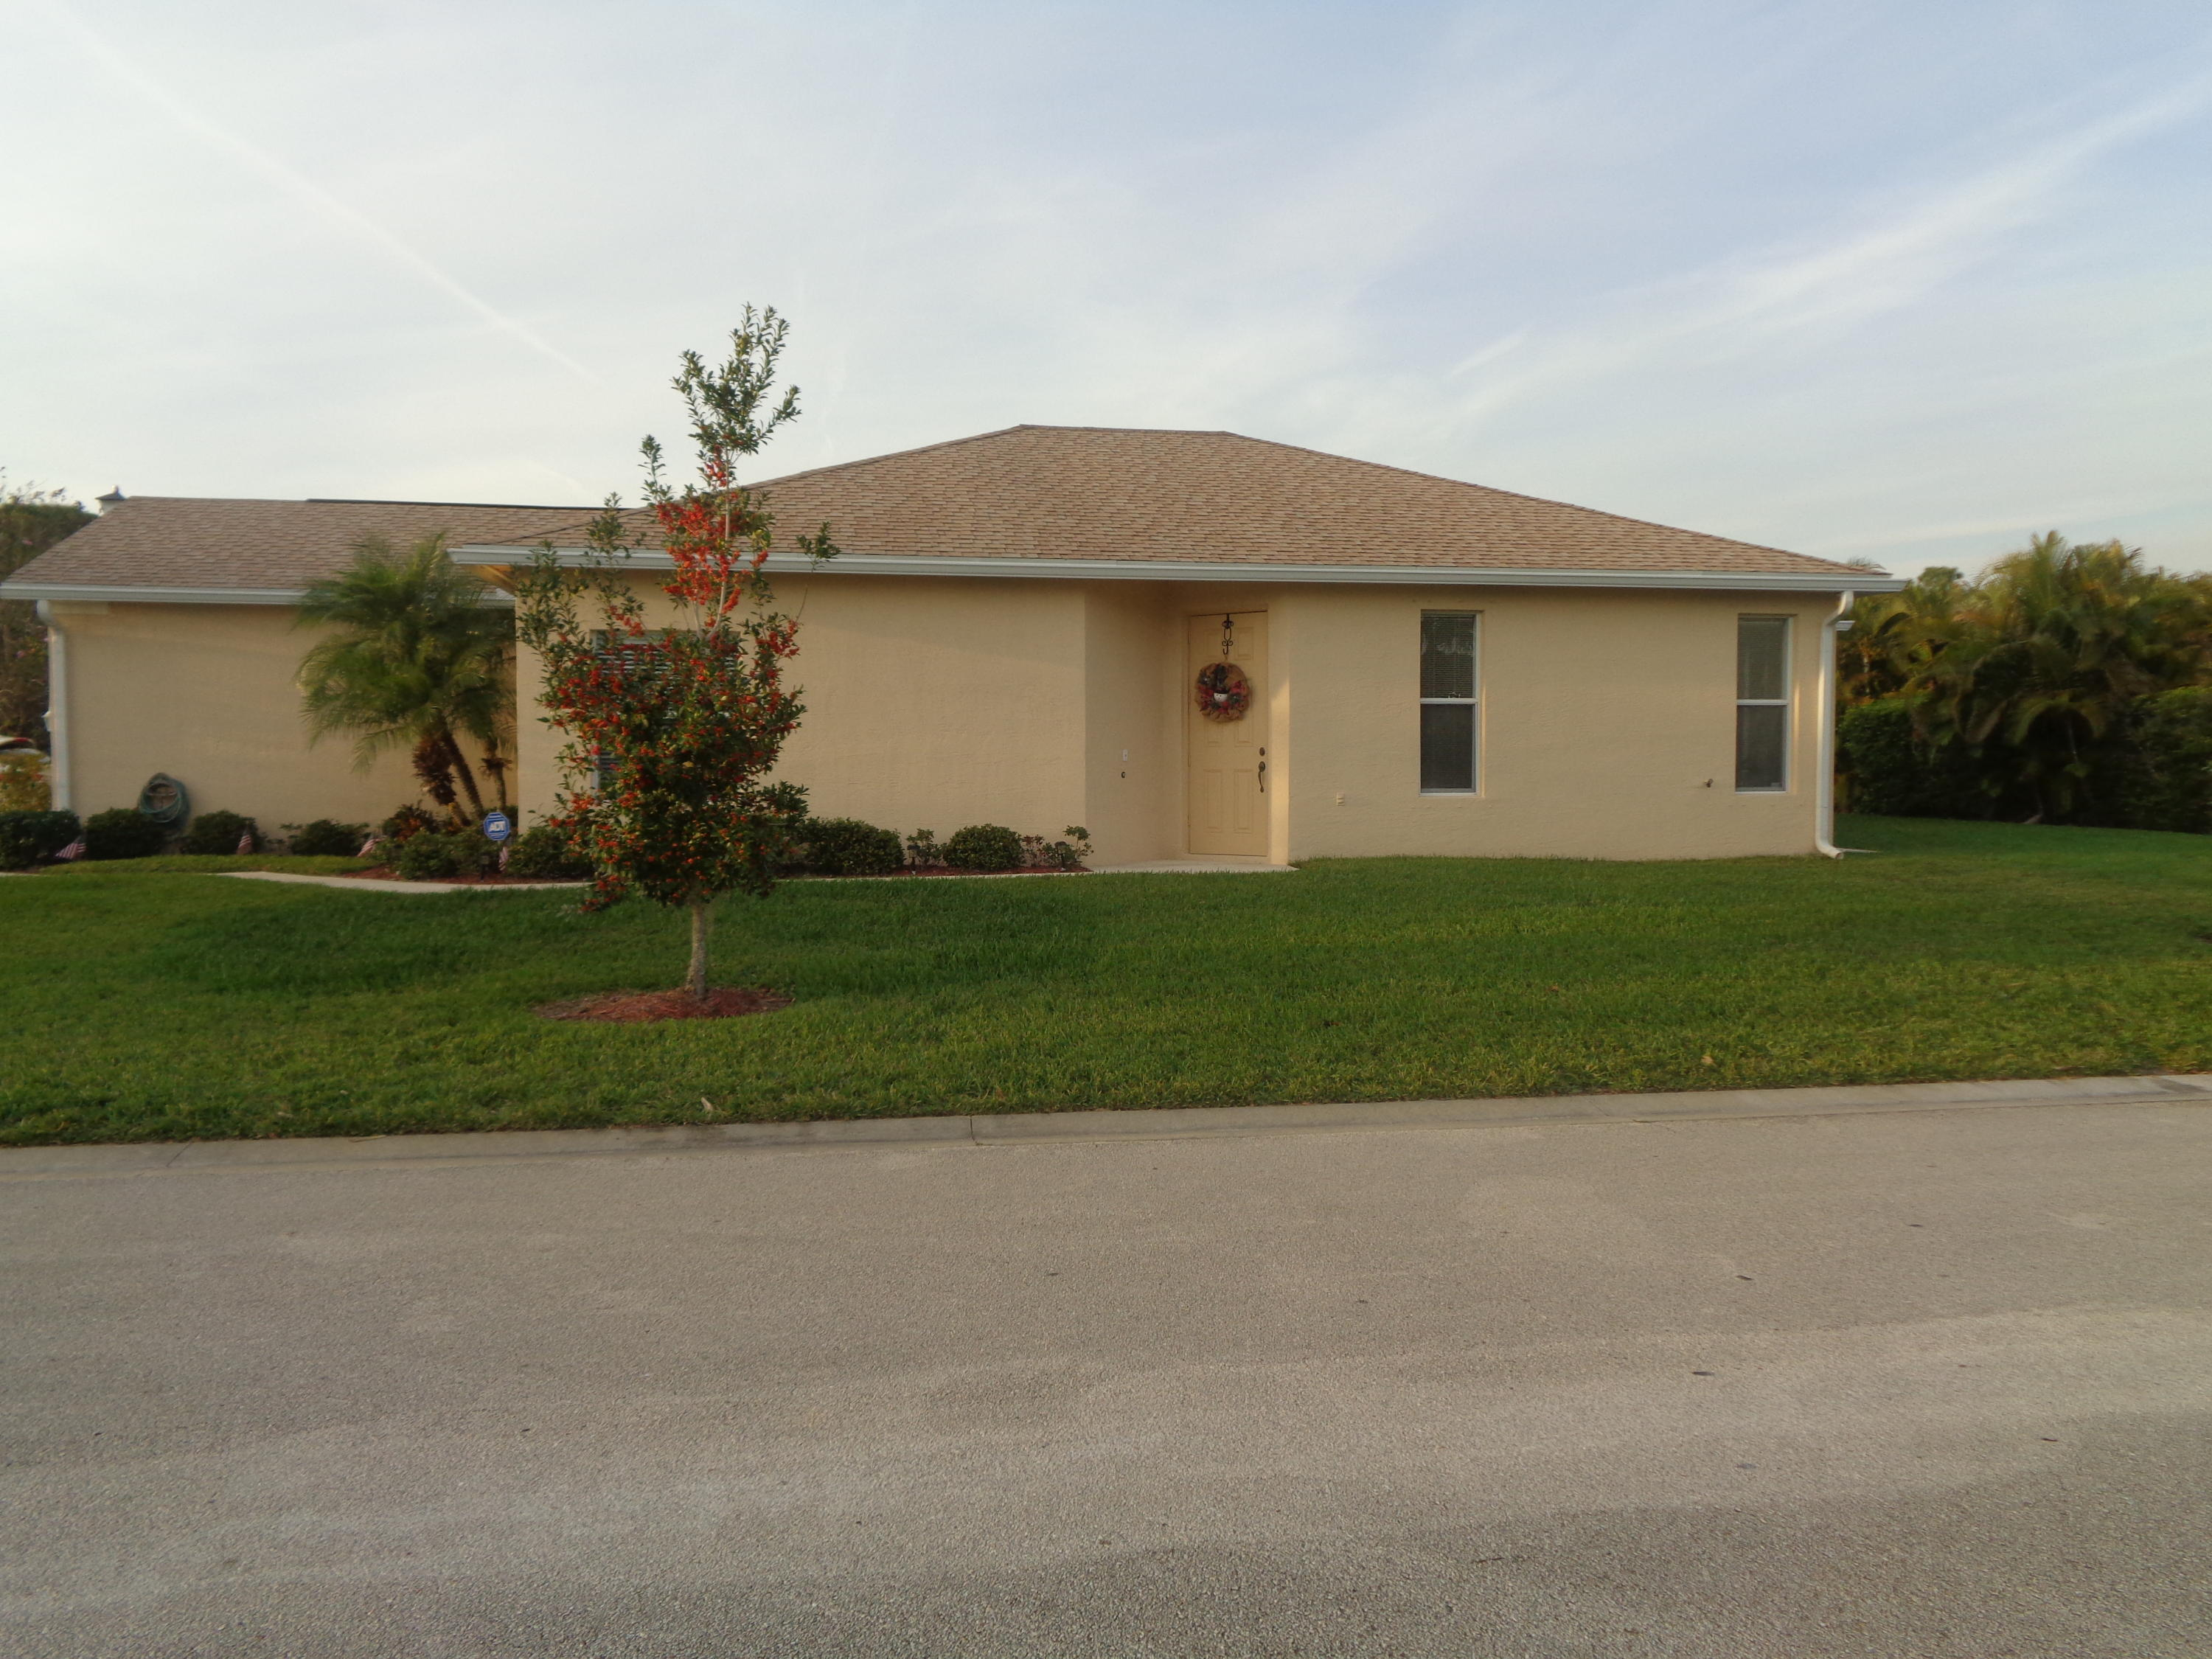 267 Sw Coconut Key Way, Port Saint Lucie, FL 34986